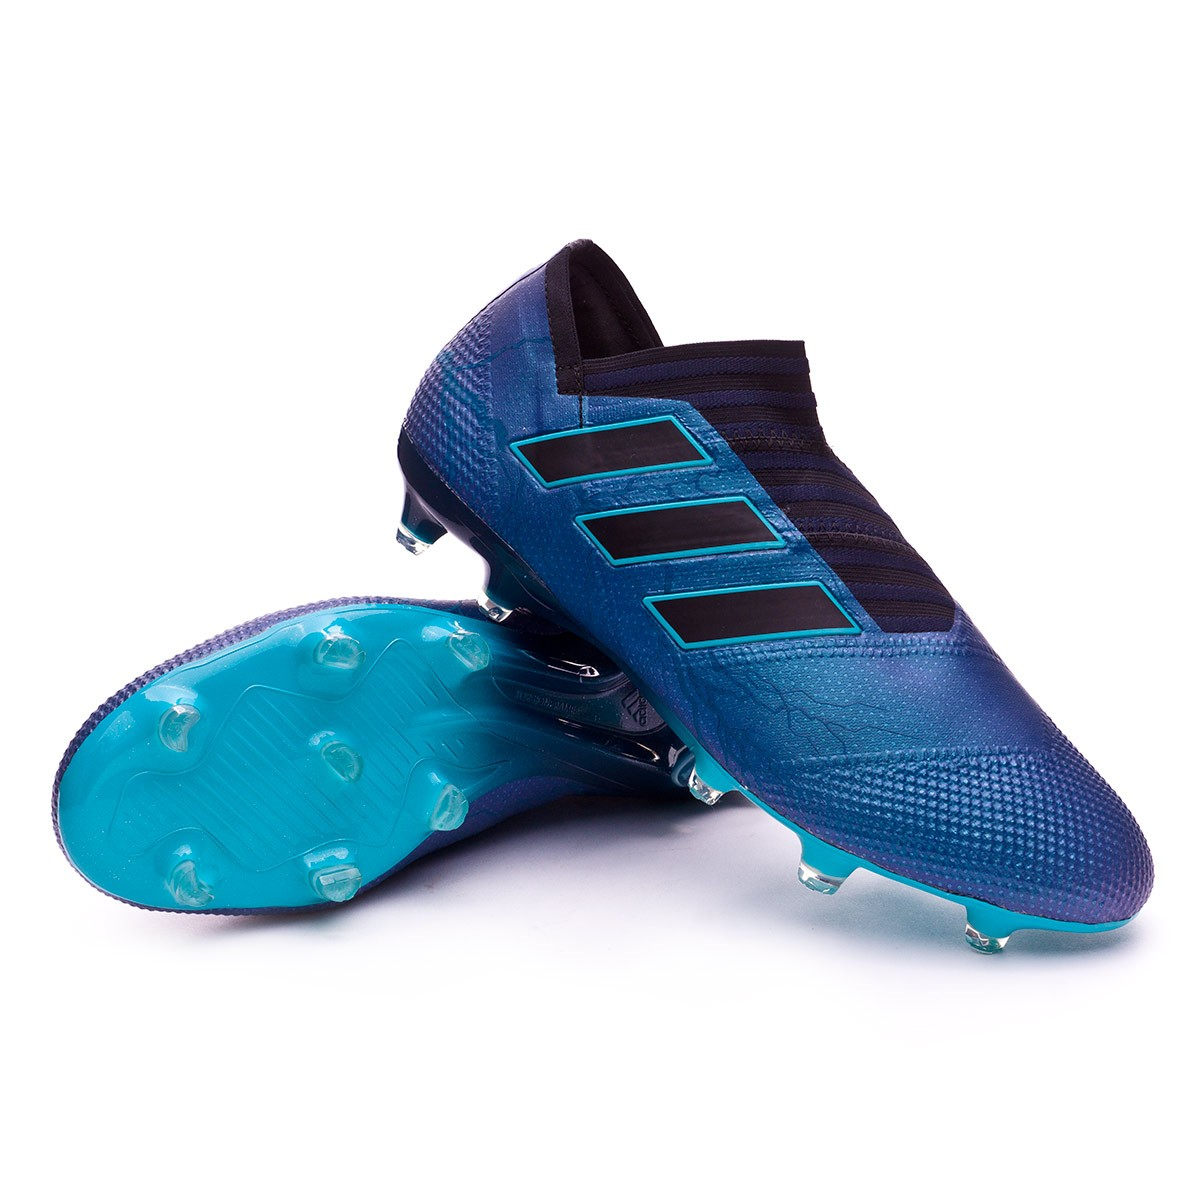 huge discount c30c3 0f4e4 Chaussure de foot adidas Nemeziz 17+ 360 Agility FG Core black-Energy blue  - Boutique de football Fútbol Emotion